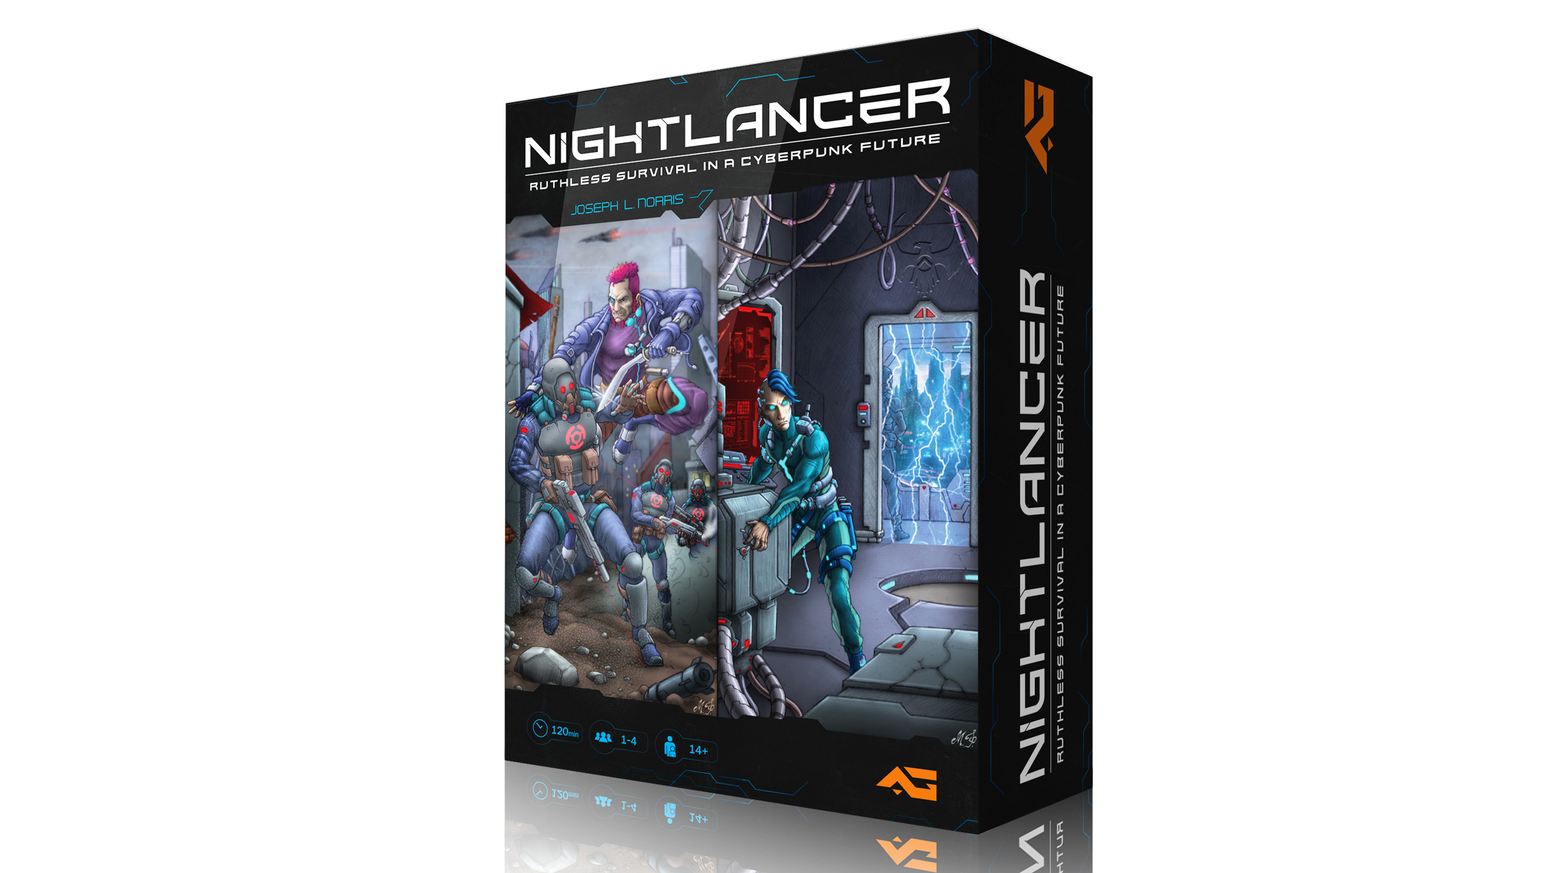 Fight to survive as society tears itself apart in this cyberpunk dystopian board game.